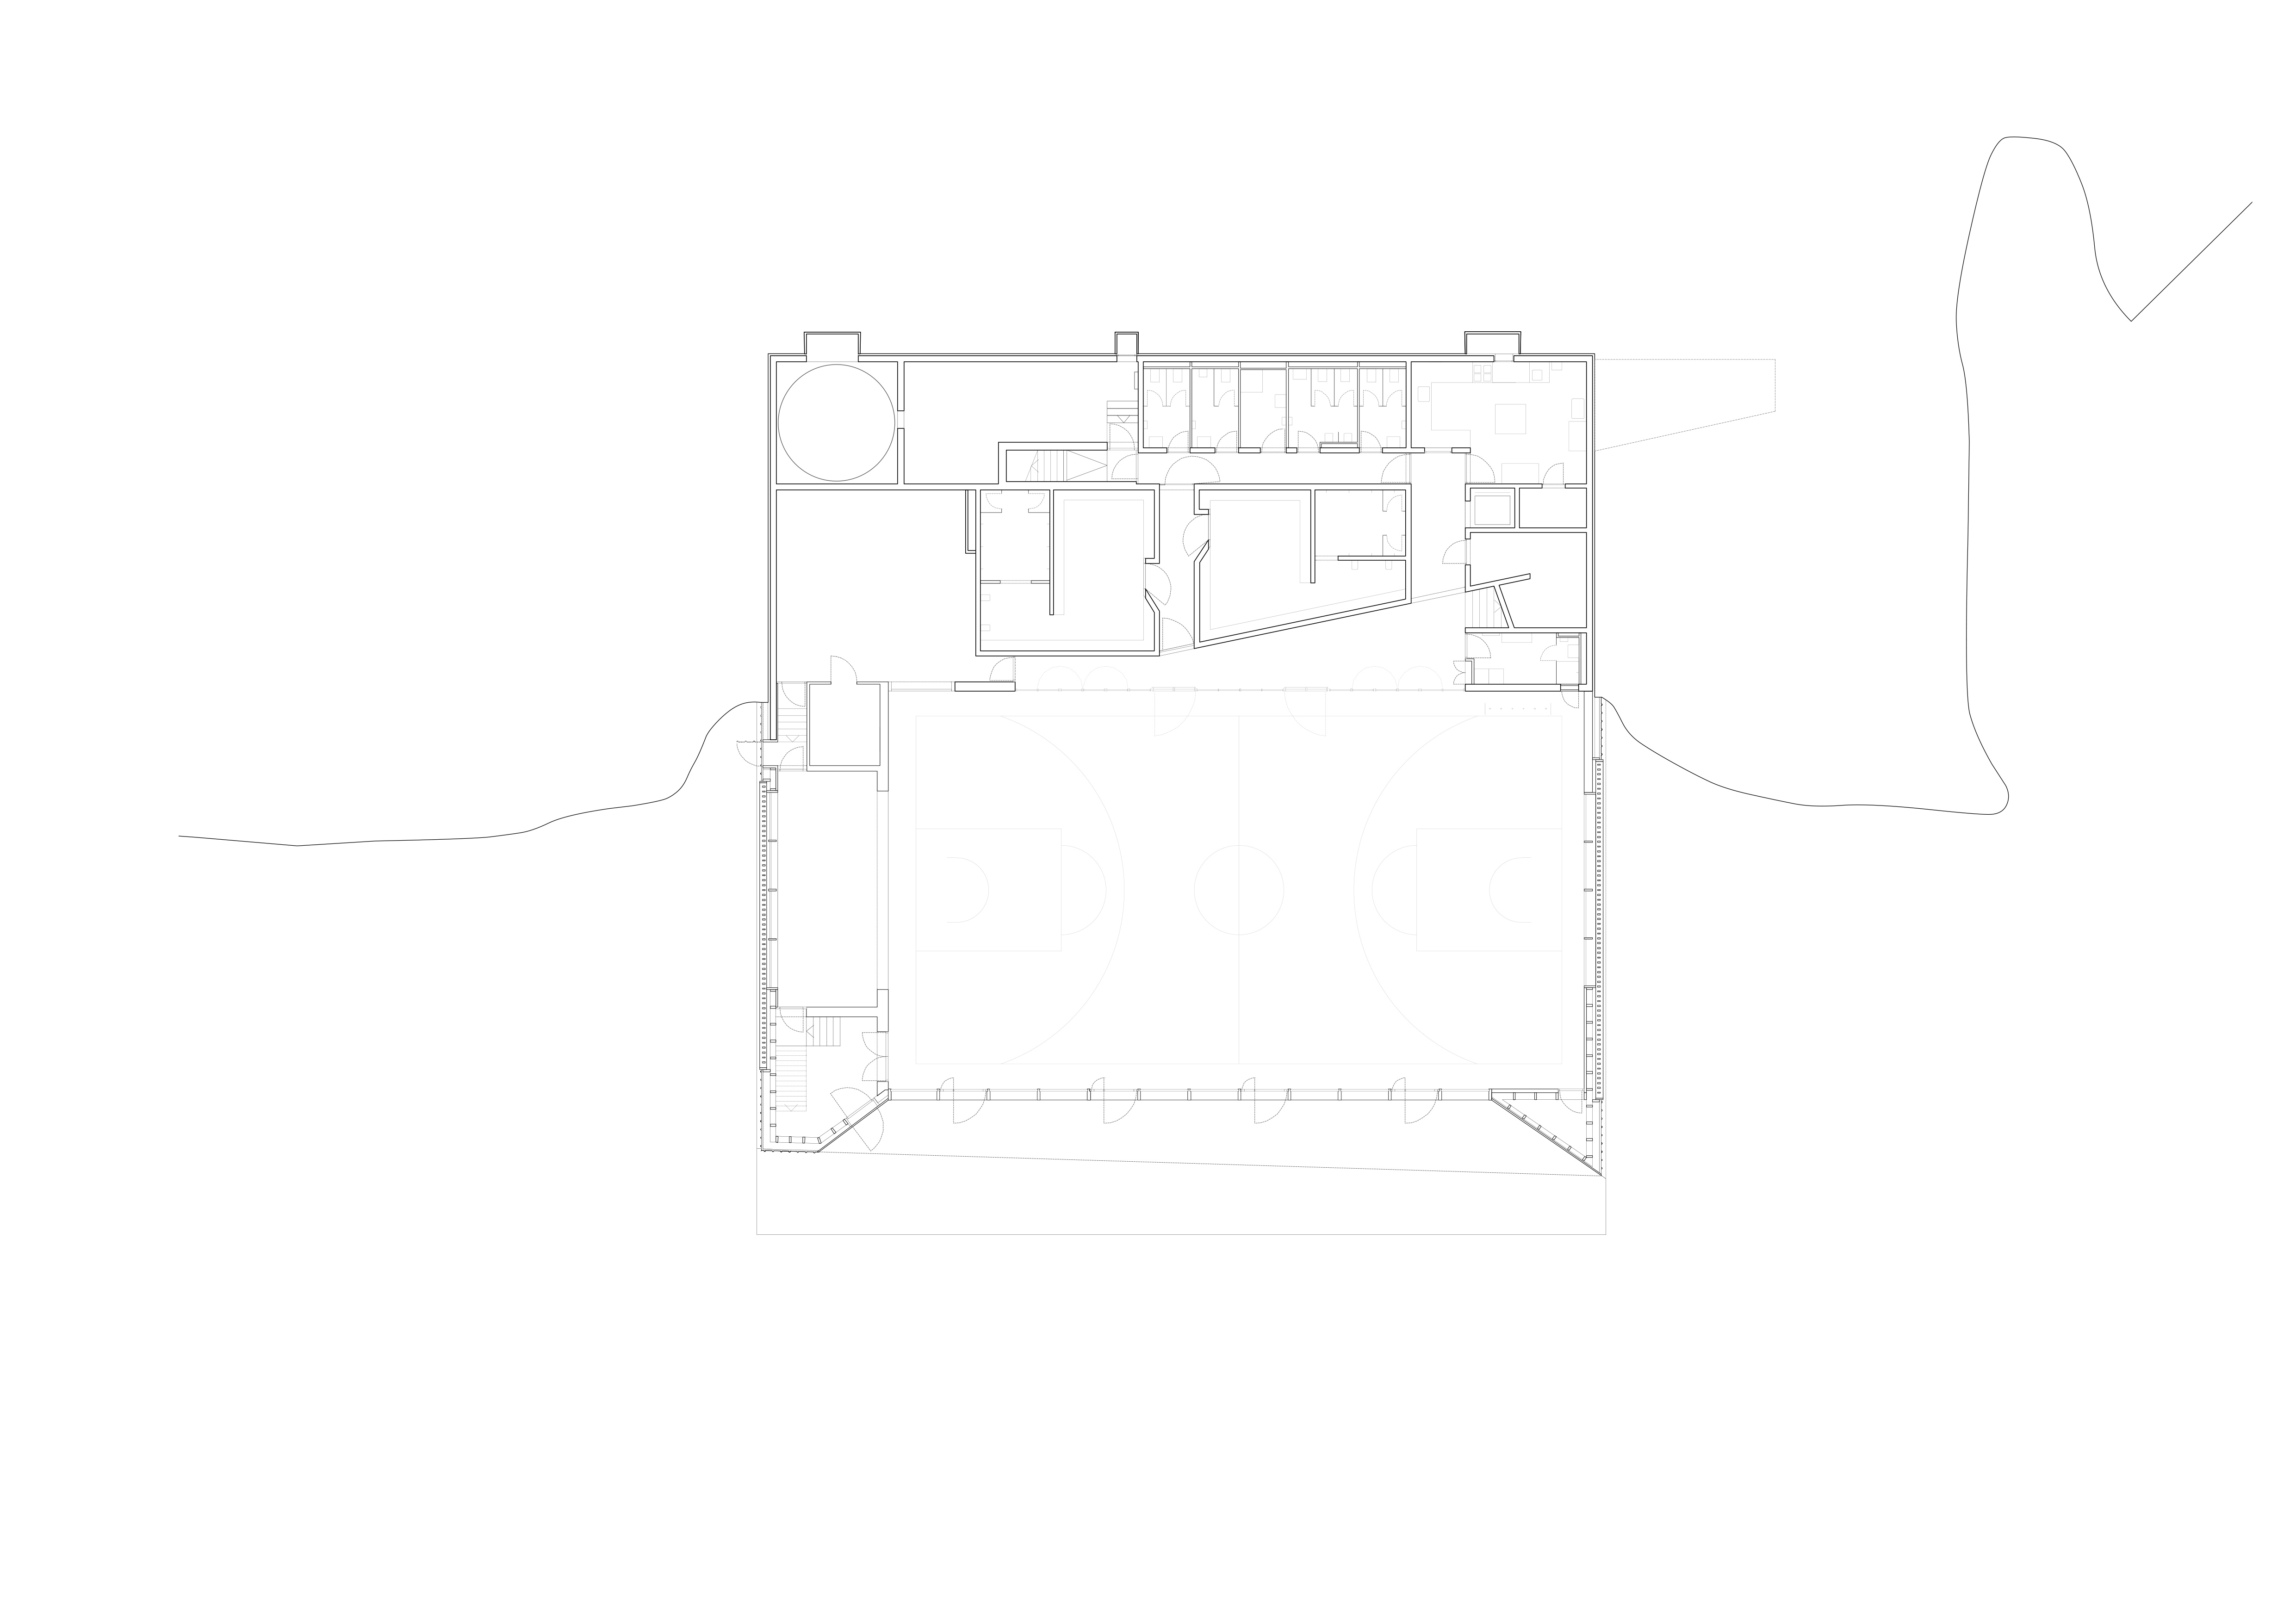 LeVD2_EXE_Layout A3_salle -1_200